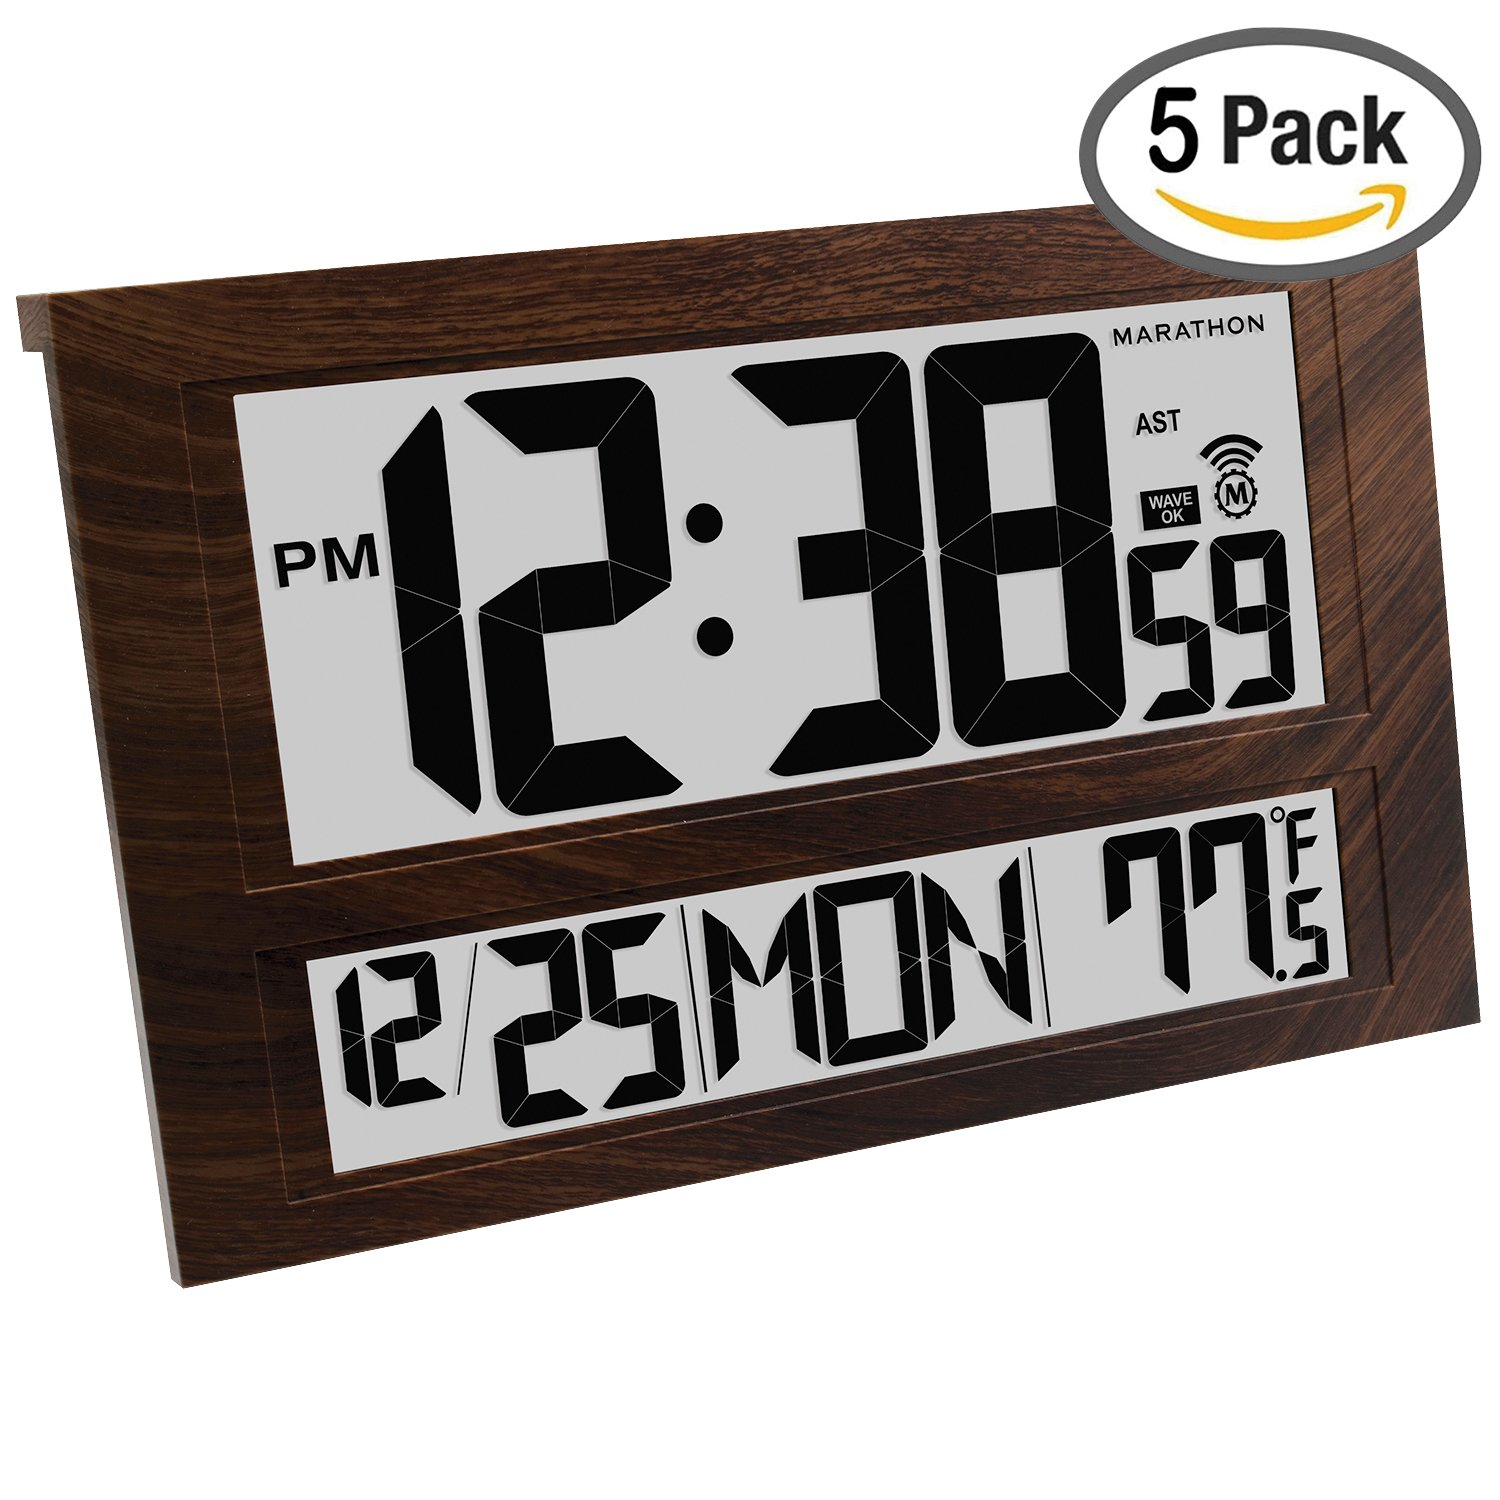 MARATHON CL030025WD/5 Commercial Grade Jumbo Atomic Wall Clock with 6 Time Zones, Indoor Temperature & Date, Wood Grain (5 Pack)